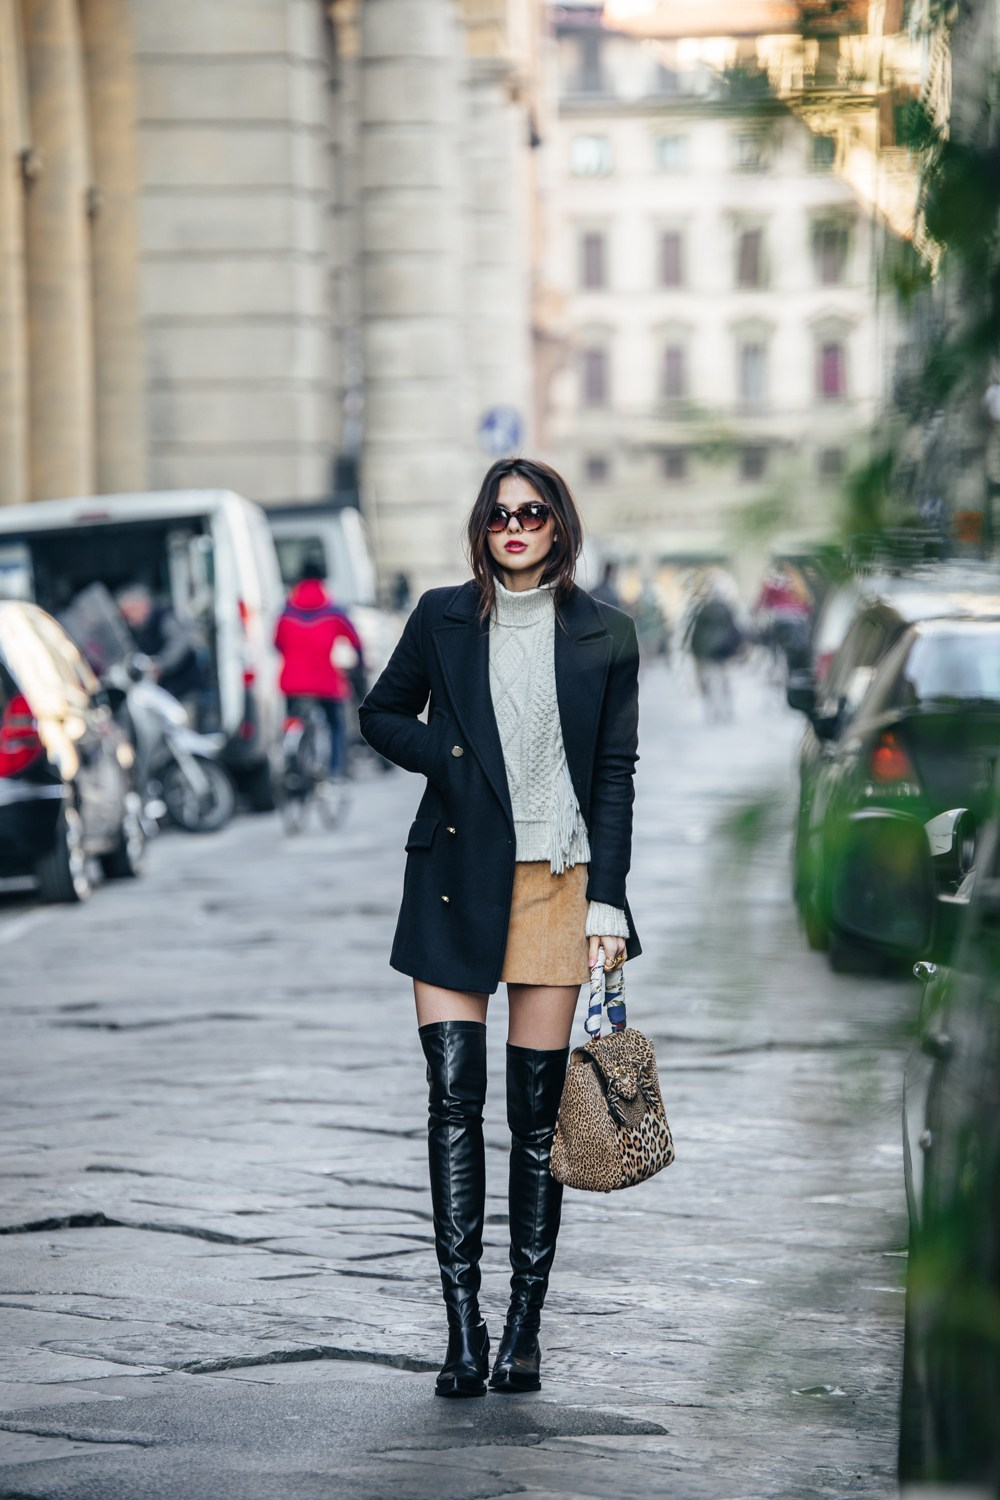 The Thigh High Boots Outfit 35 Ways To Wear Thigh High Boots Just The Design